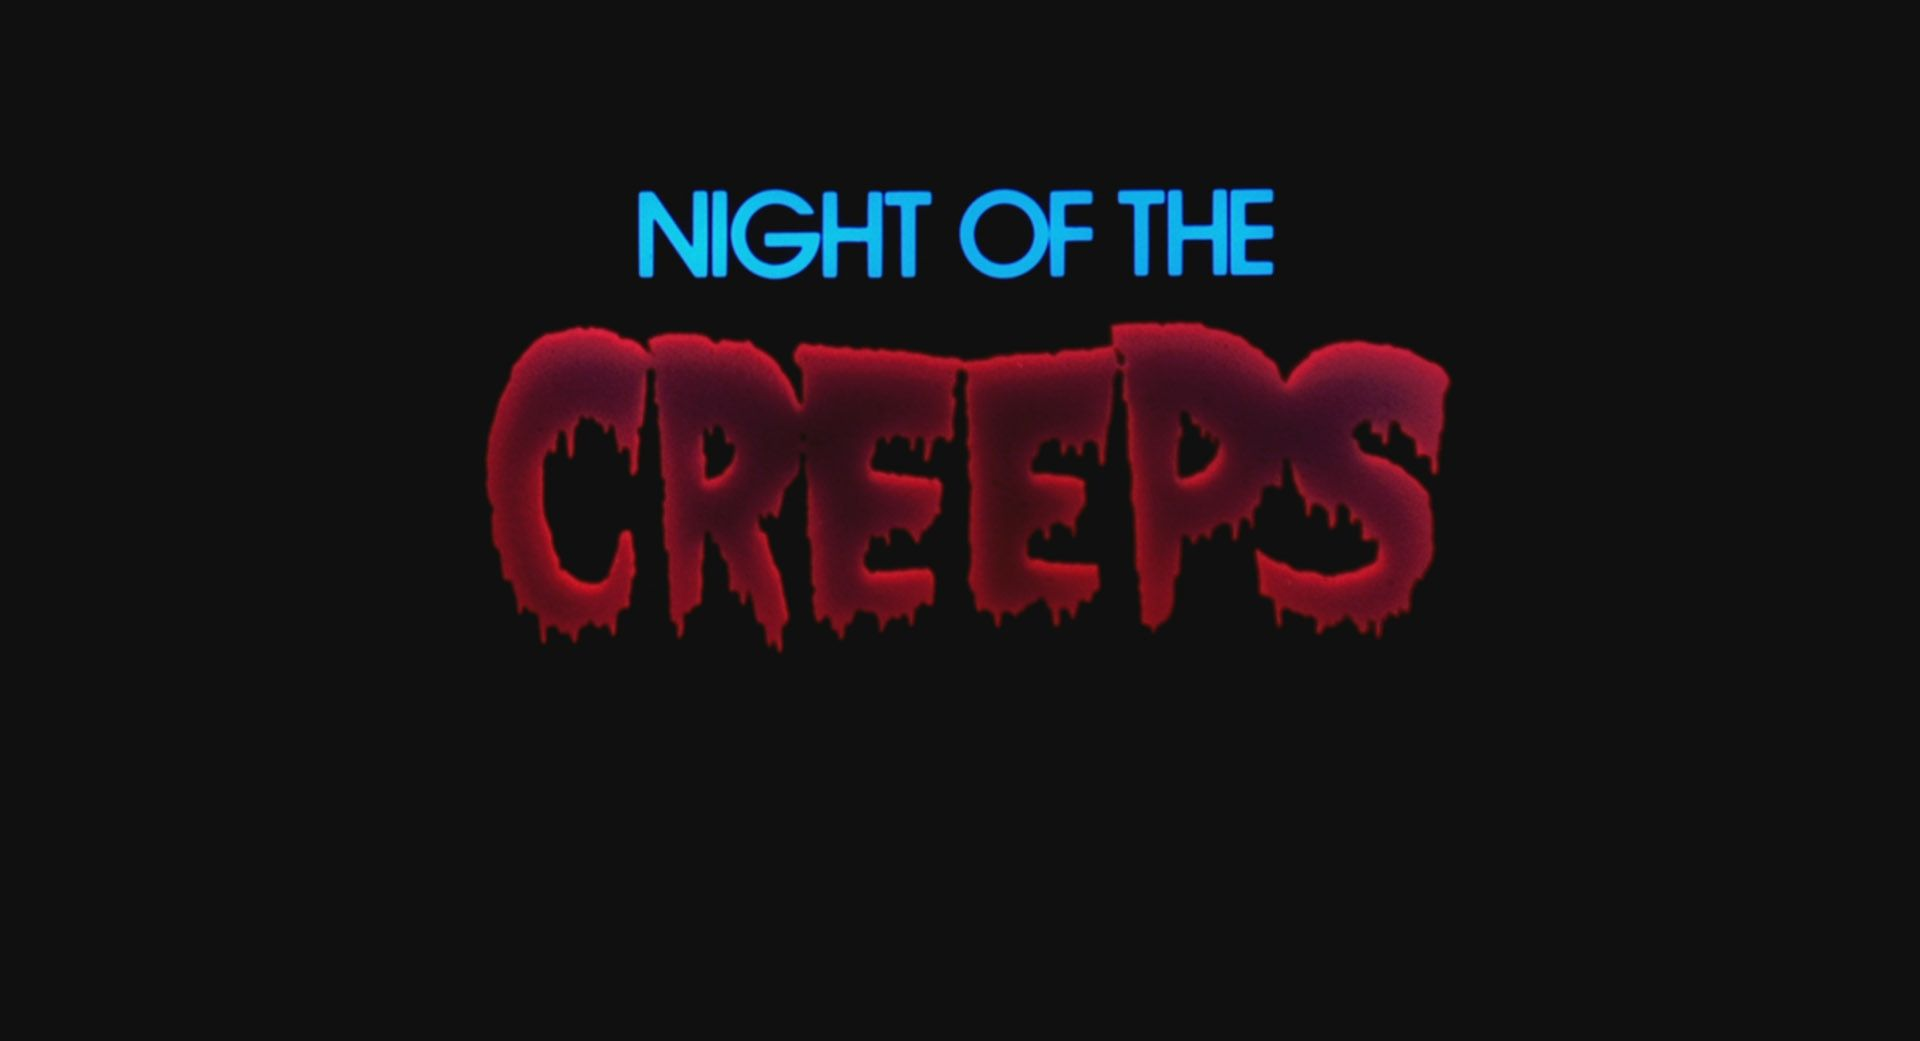 Night of the creeps 1986 title card horror movie